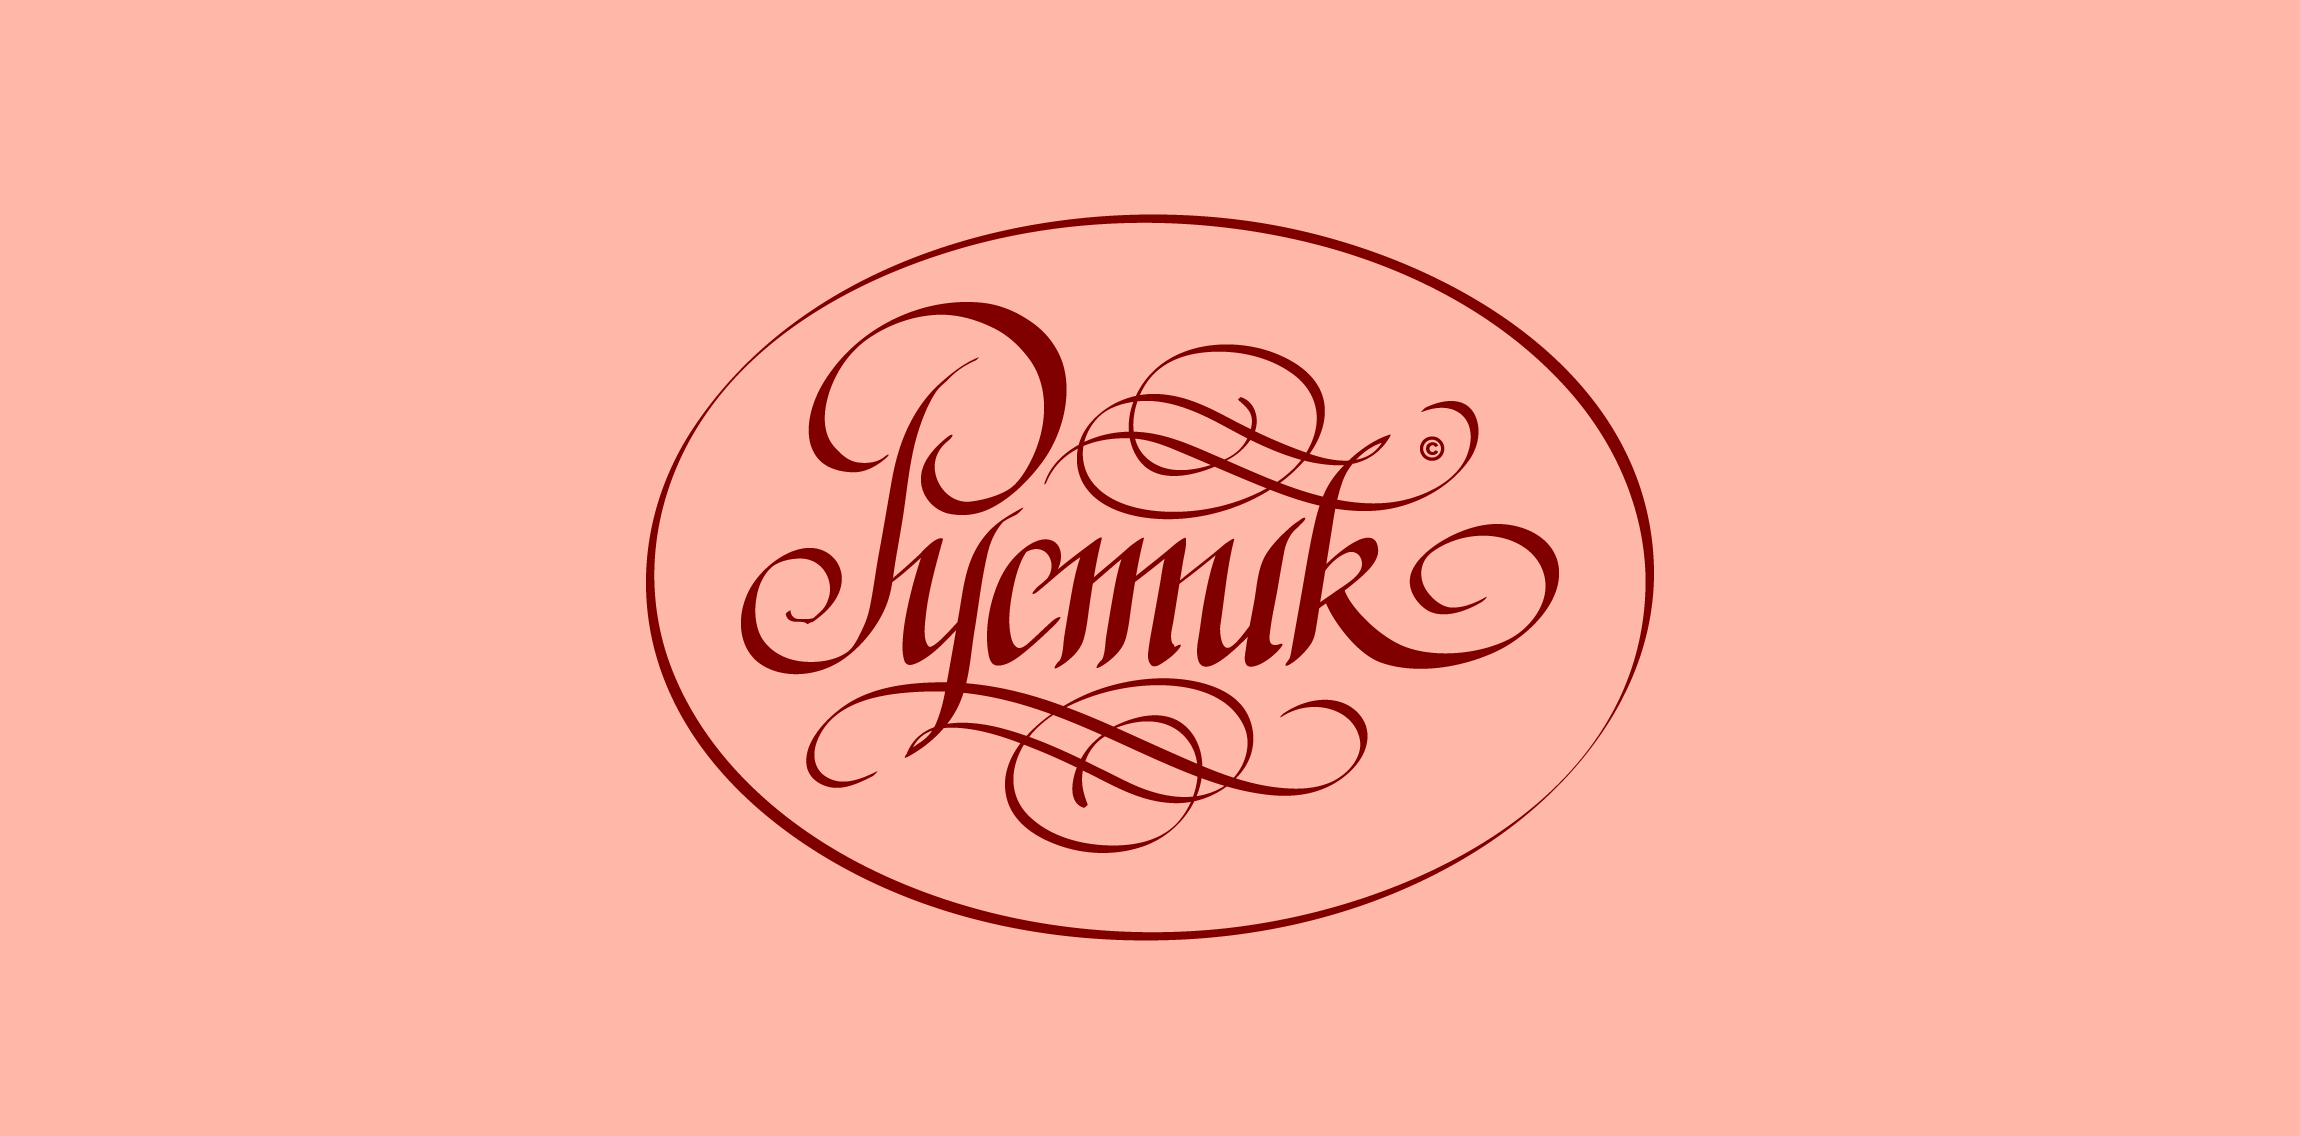 Designed For Artisan Bread Bakery Called Rustic In Cyrillic